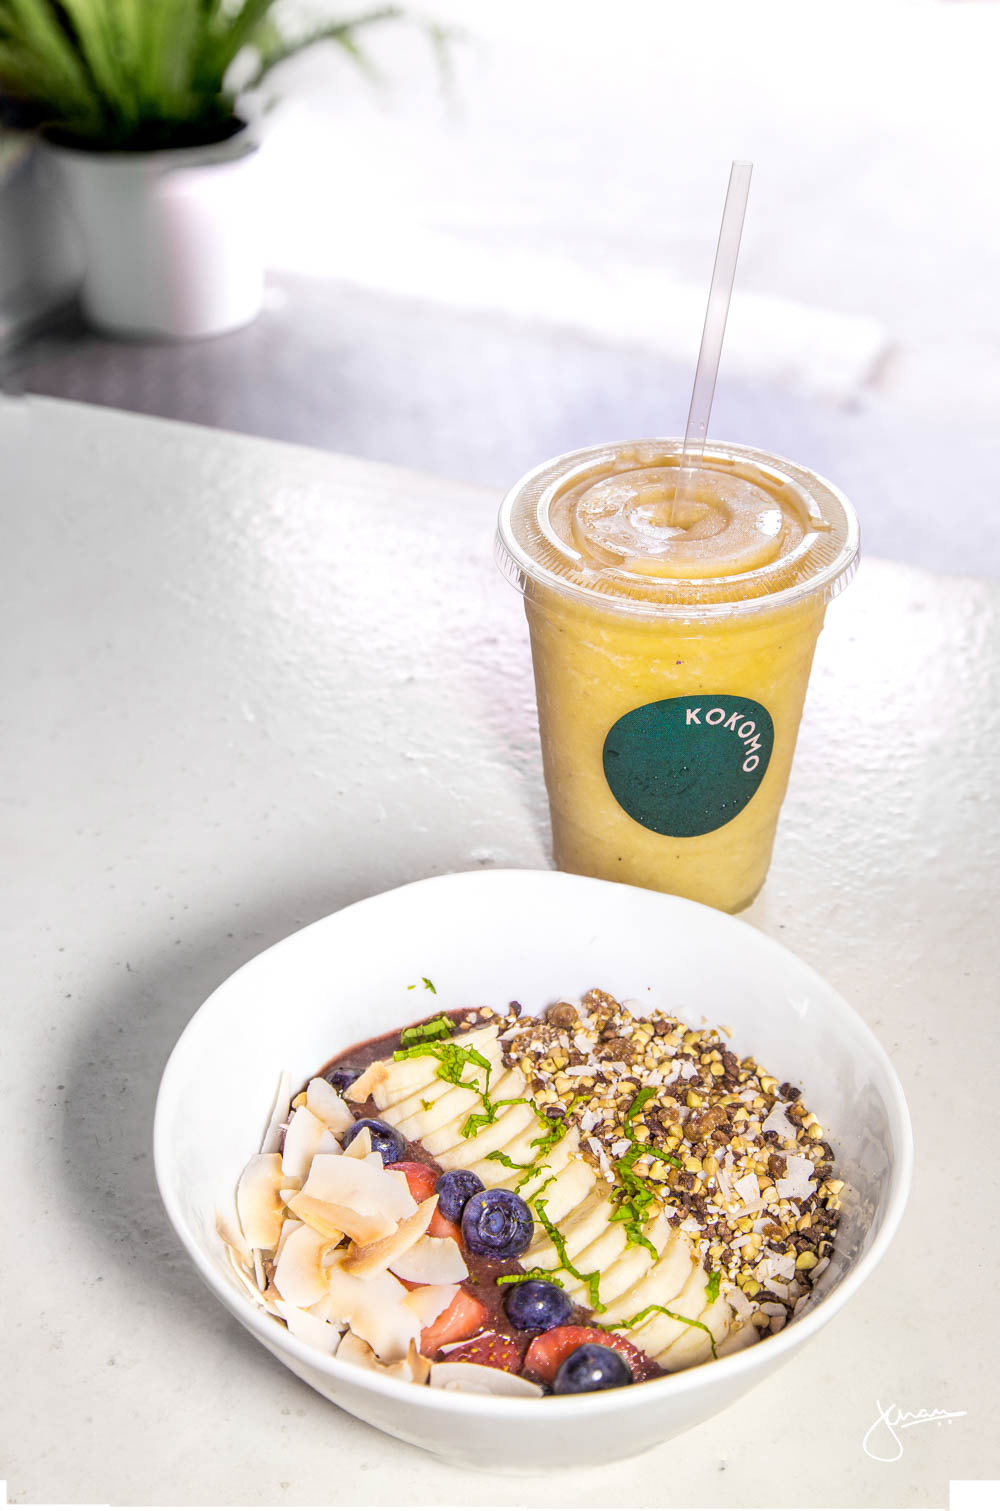 Acai Bowl with Orange Dream Smoothie